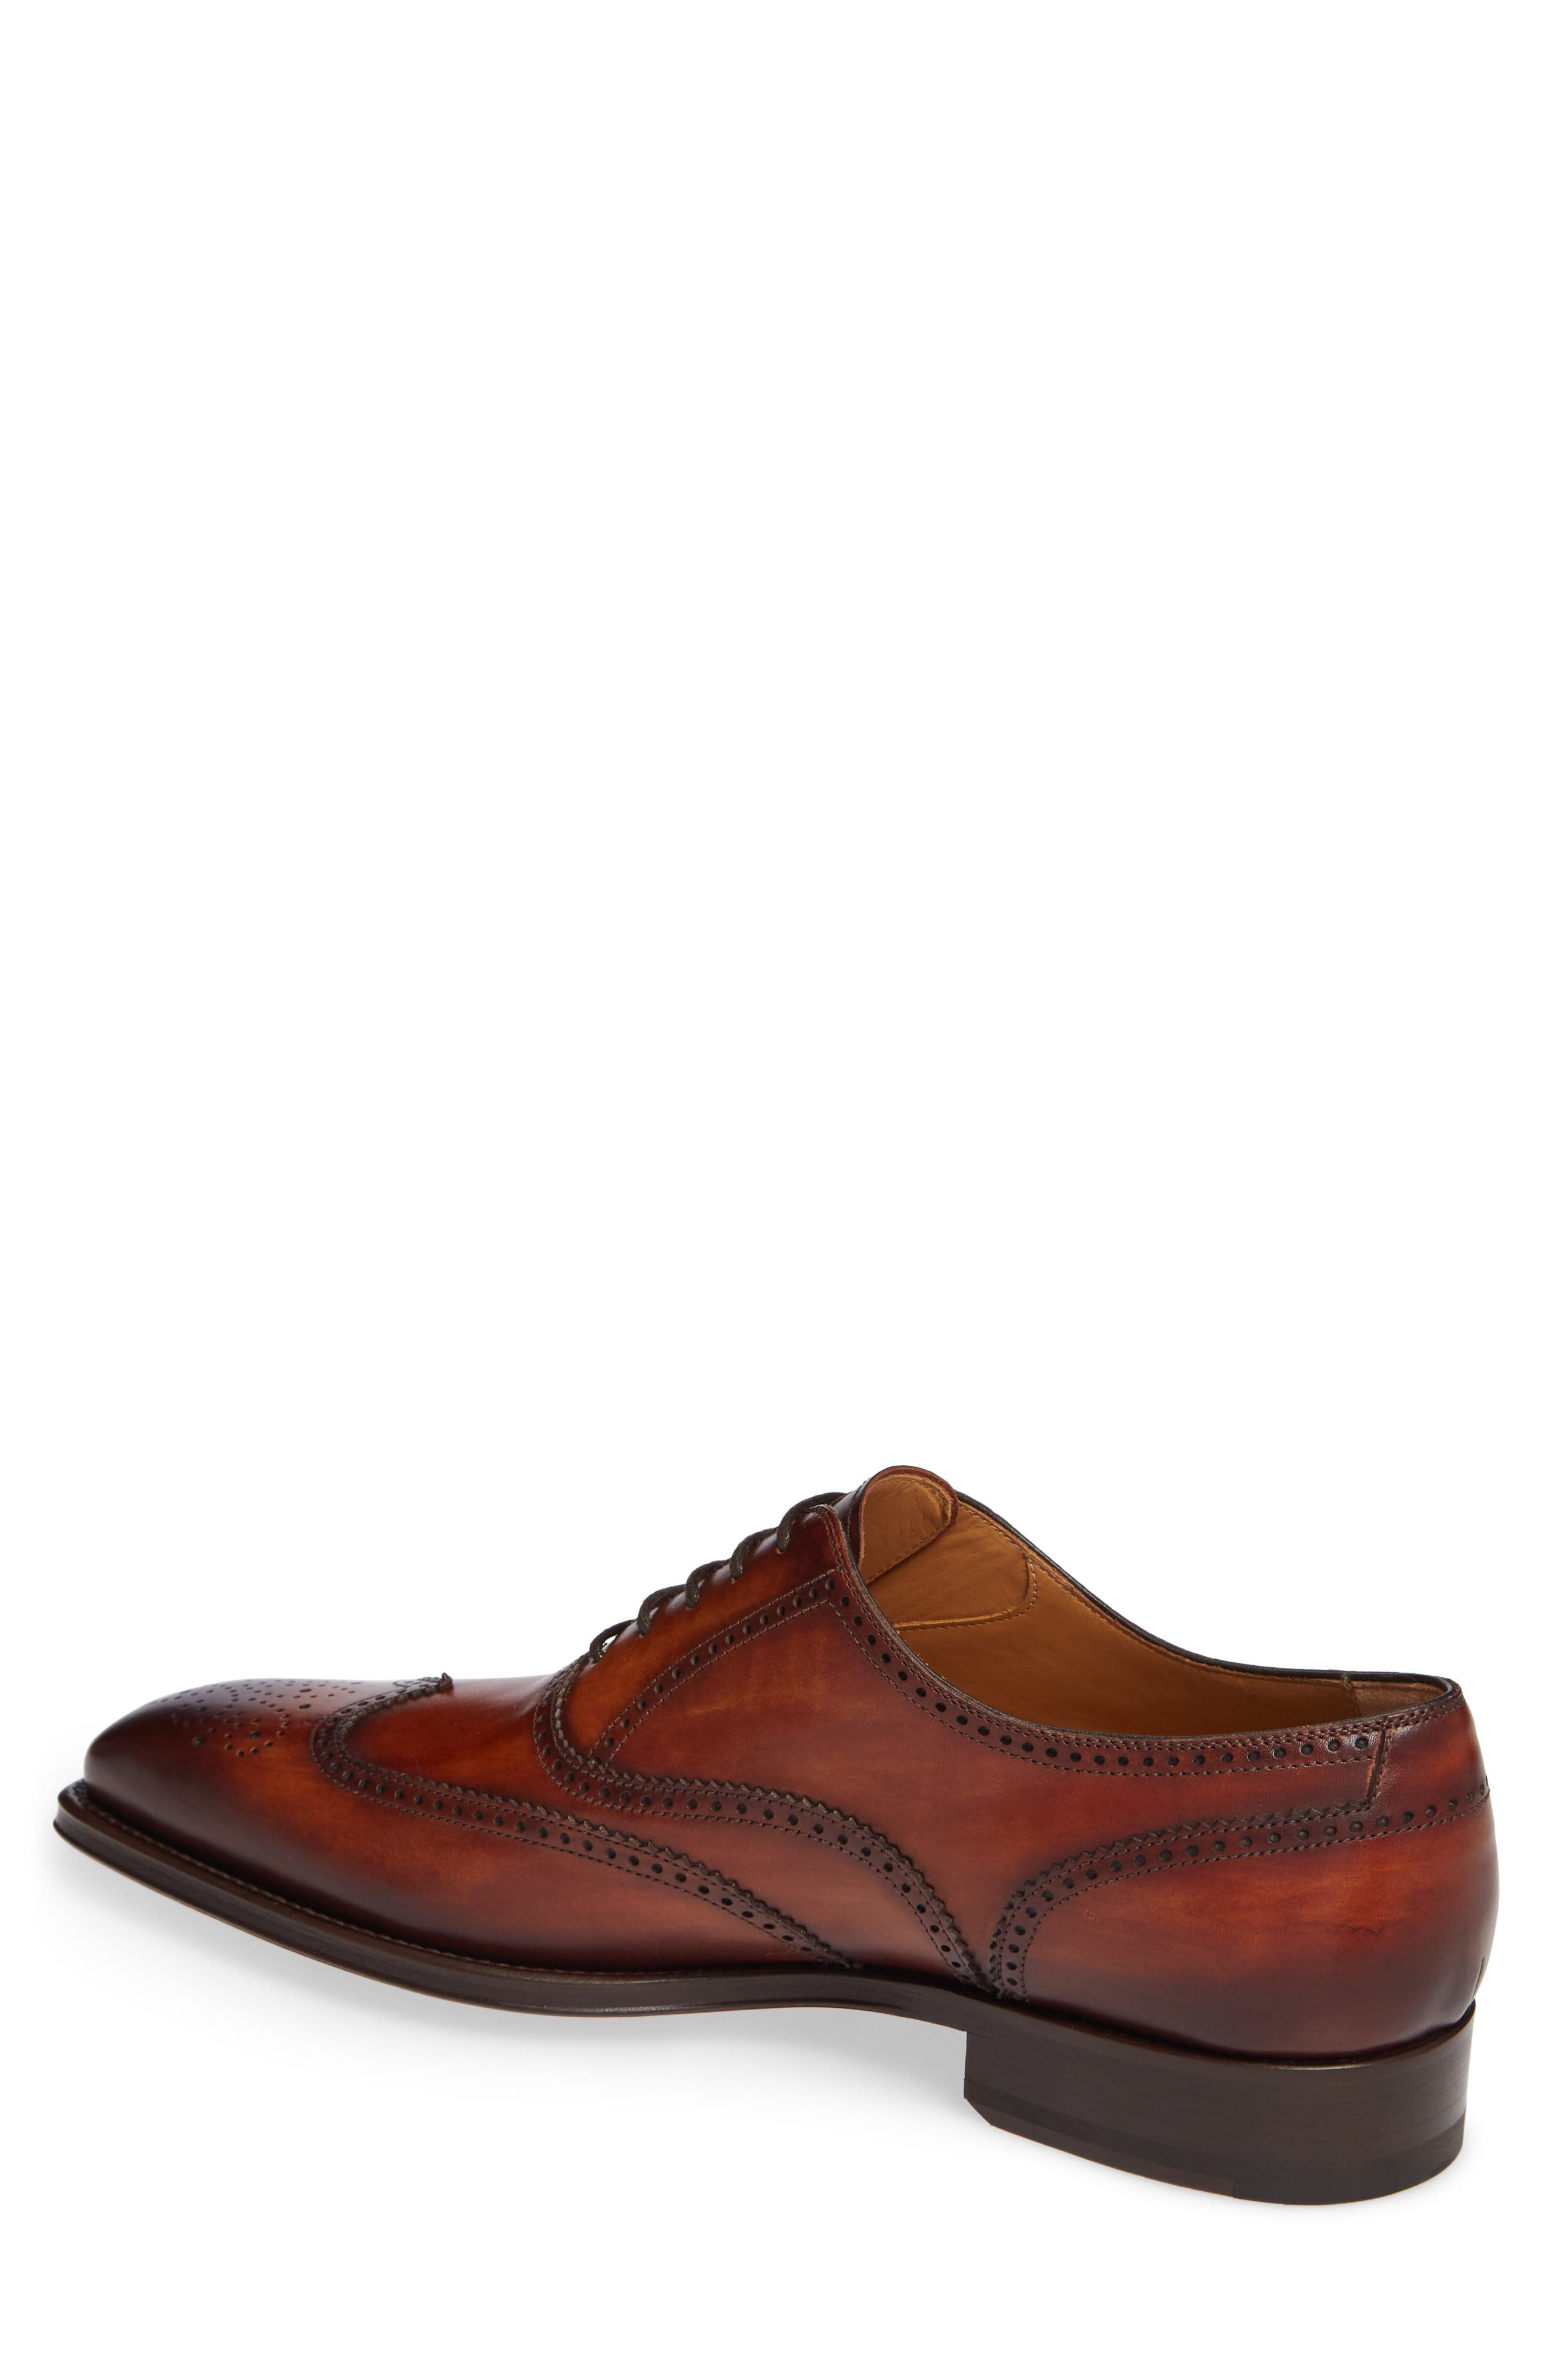 Ledger Wingtip,                             Alternate thumbnail 2, color,                             COGNAC LEATHER